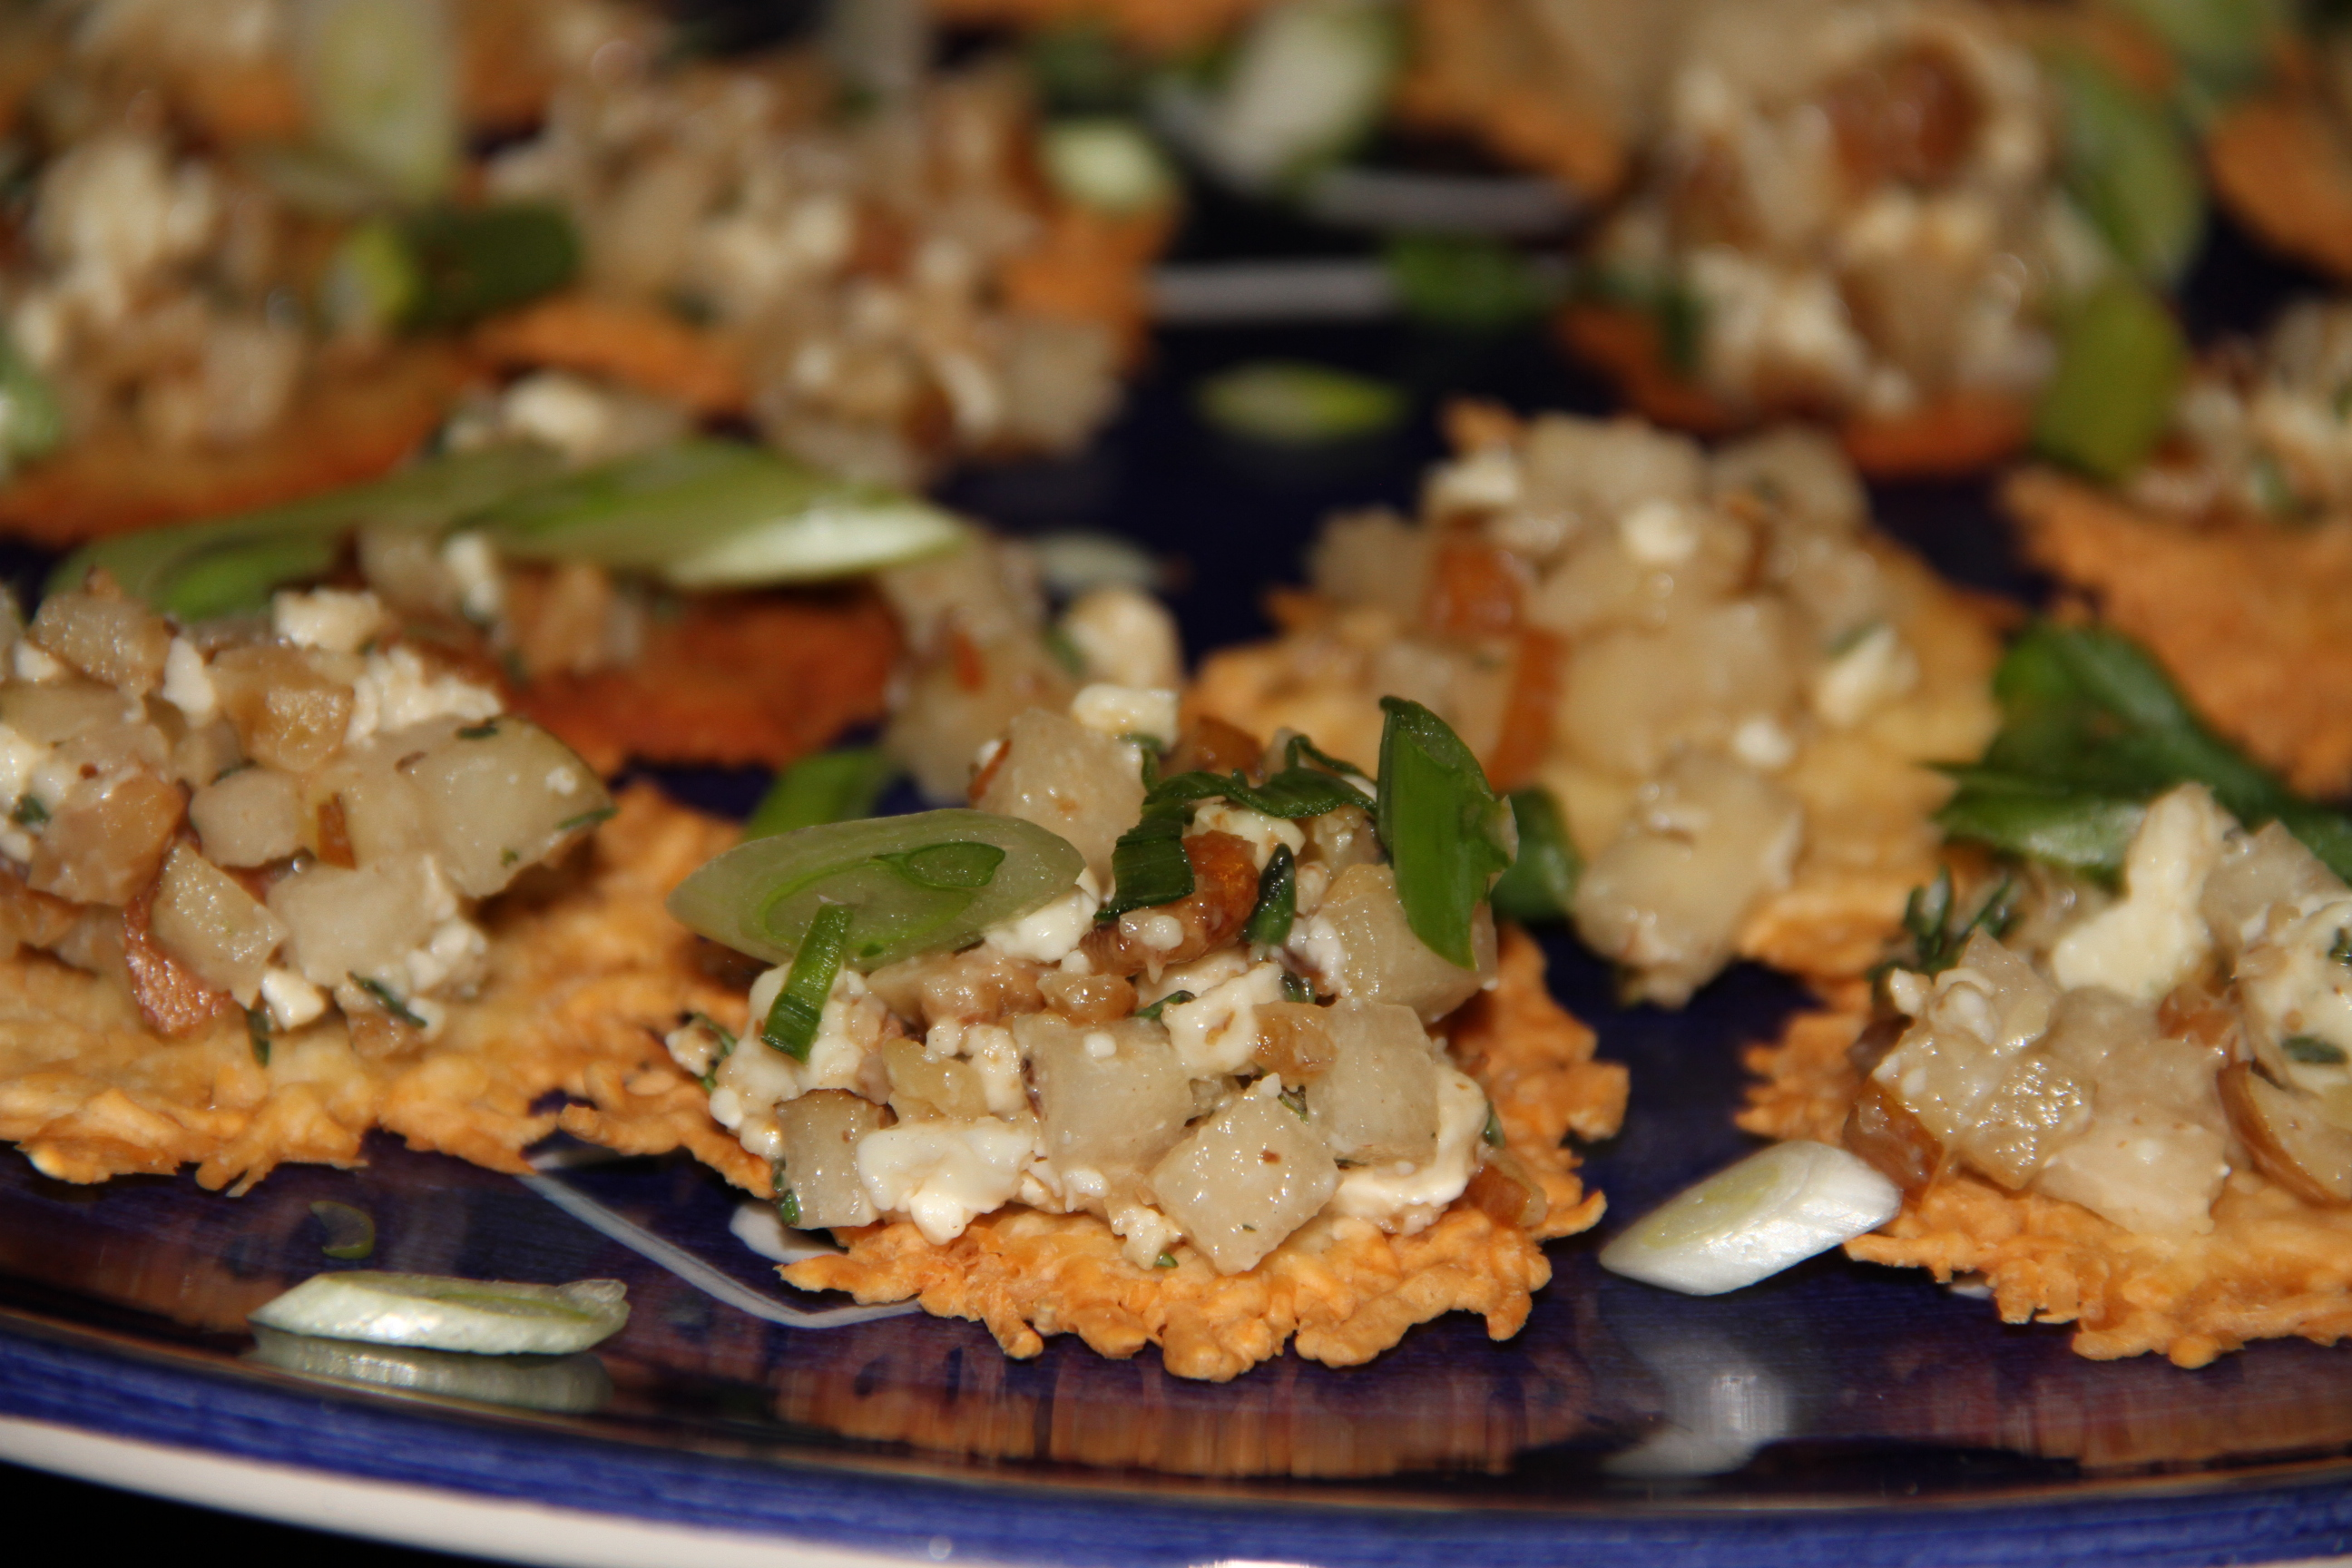 Winter Bliss--Parmesan Crackers with pear, gorgonzola and walnuts